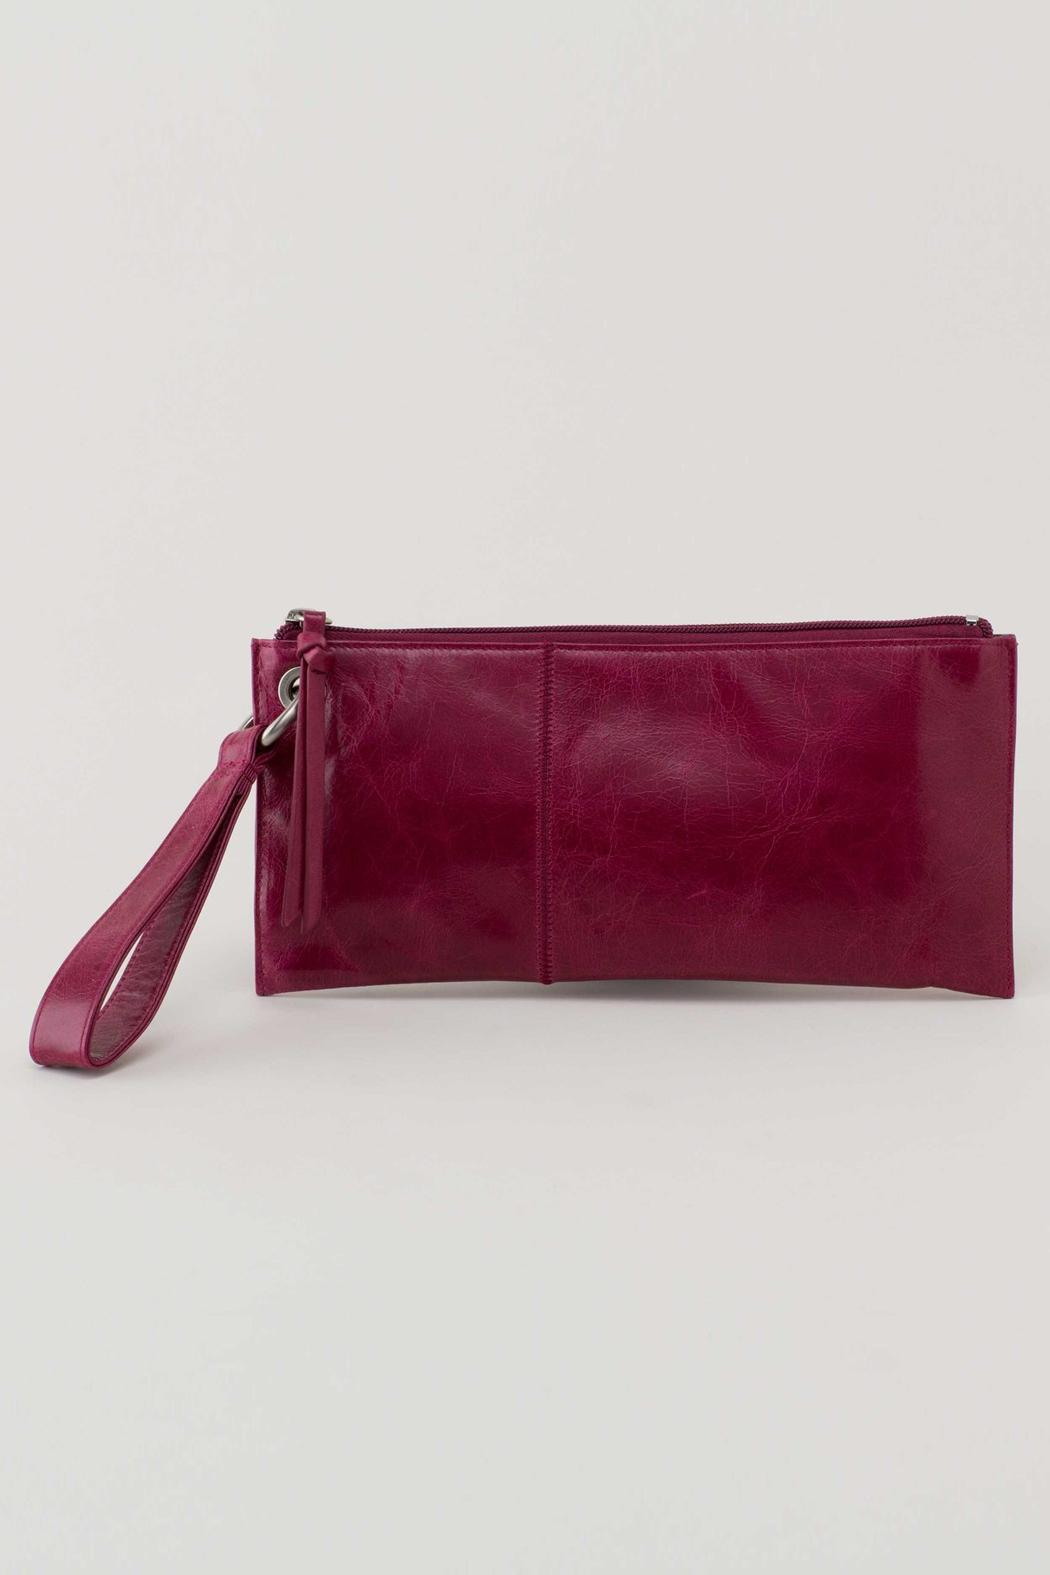 VIDA Statement Clutch - Eudicots by VIDA 0Bl11YDQv